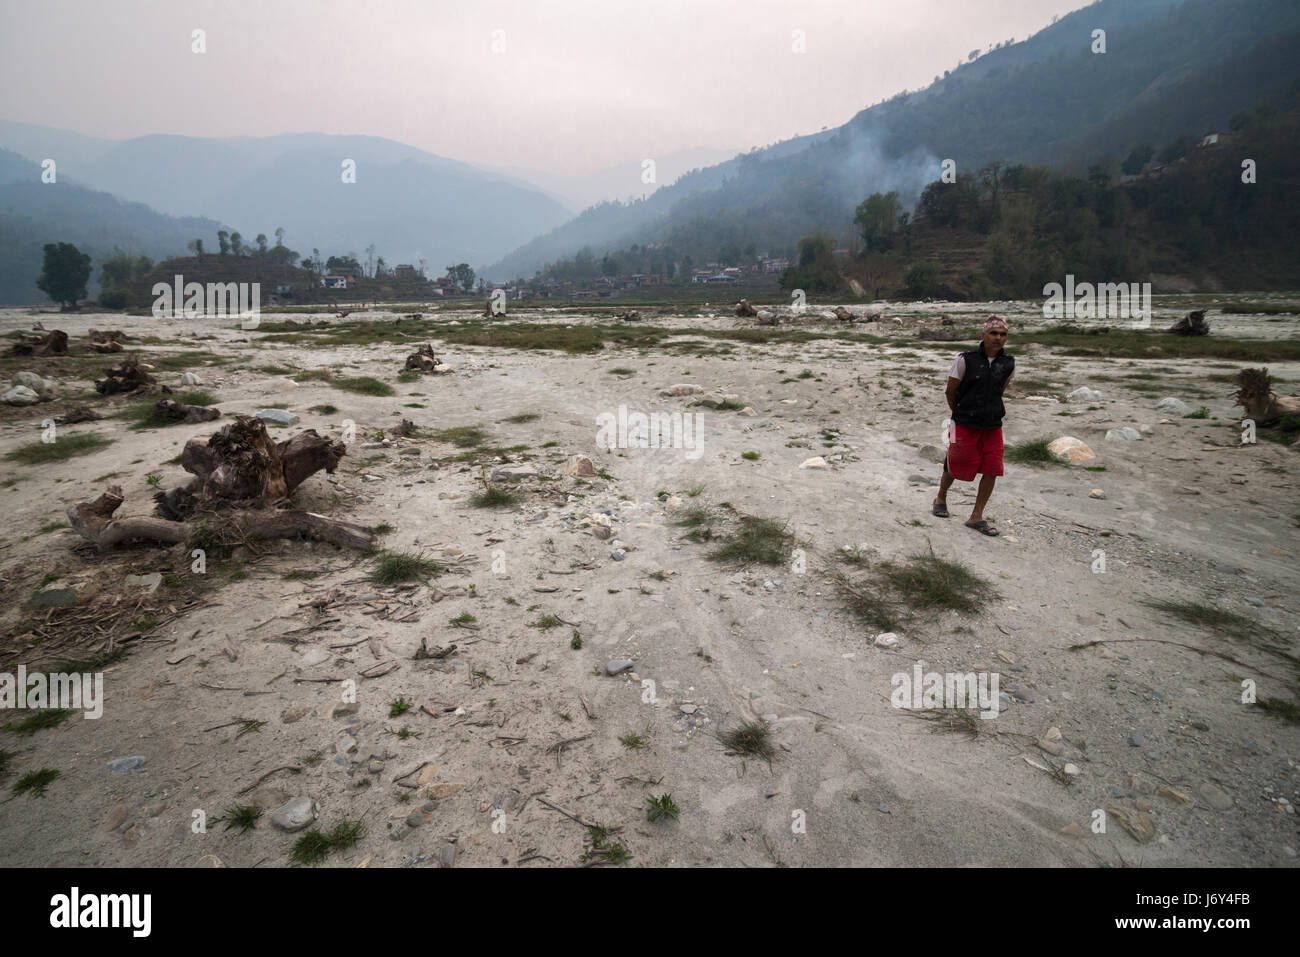 A man walks through a wide floodplain in Khani Khahare near Kaski and Nuwakot, Nepal. - Stock Image